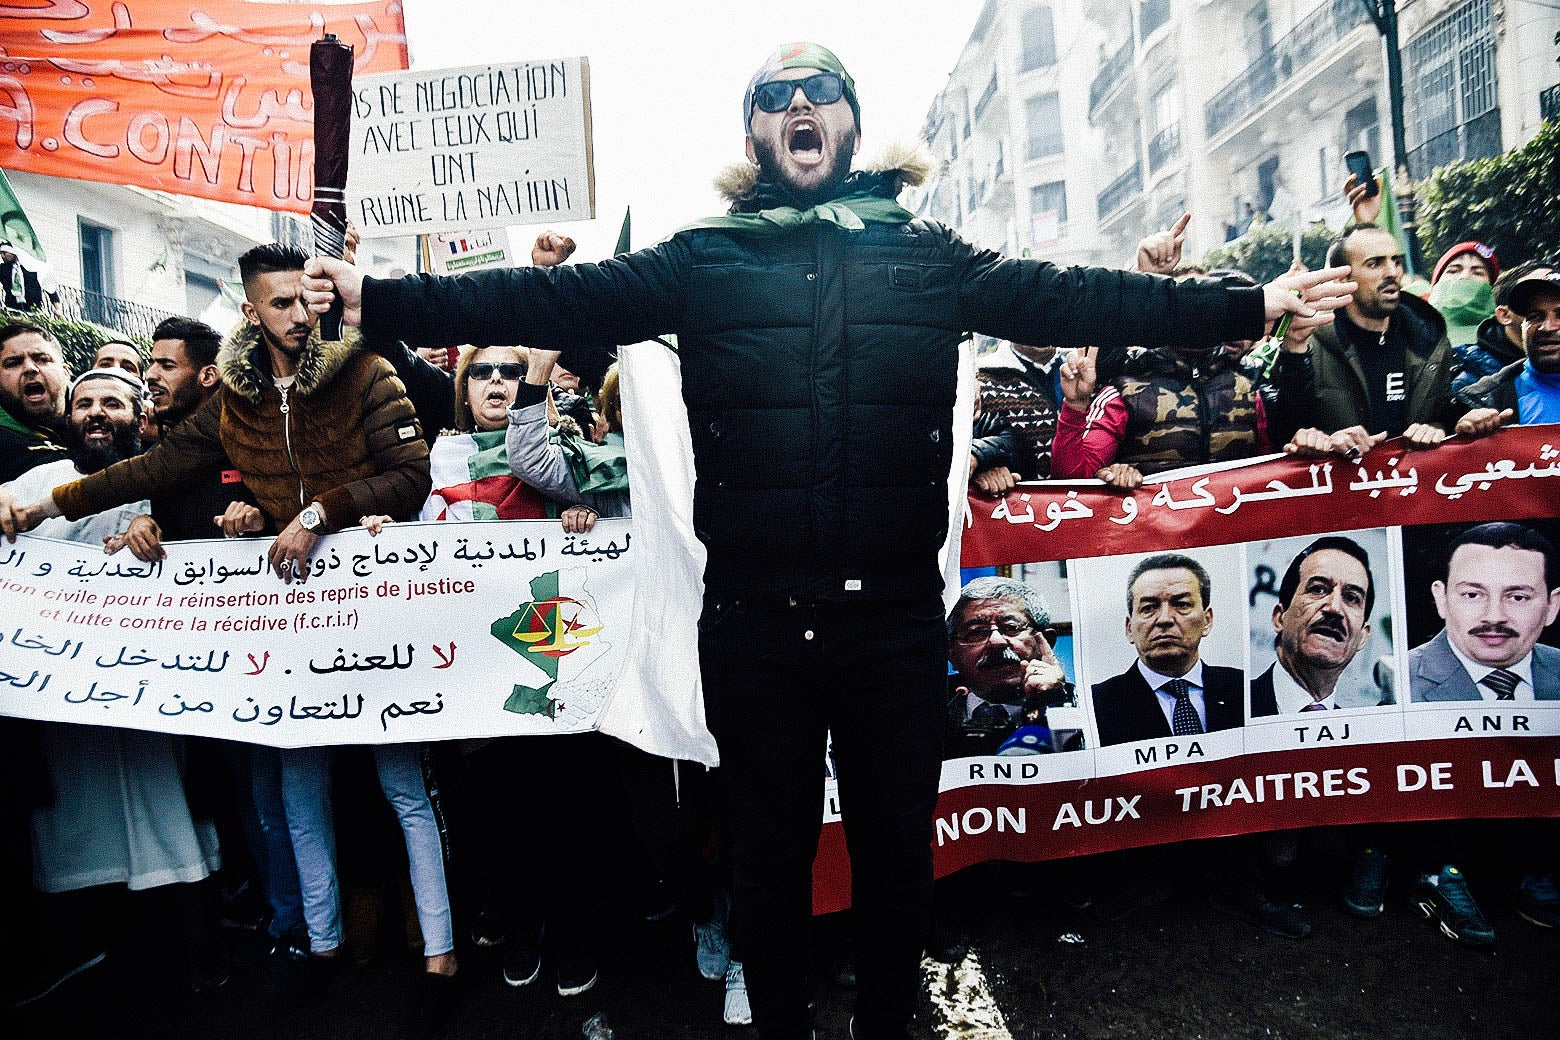 A protester jumps ahead of a marching crowd during a demonstration against ailing President Abdelaziz Bouteflika.